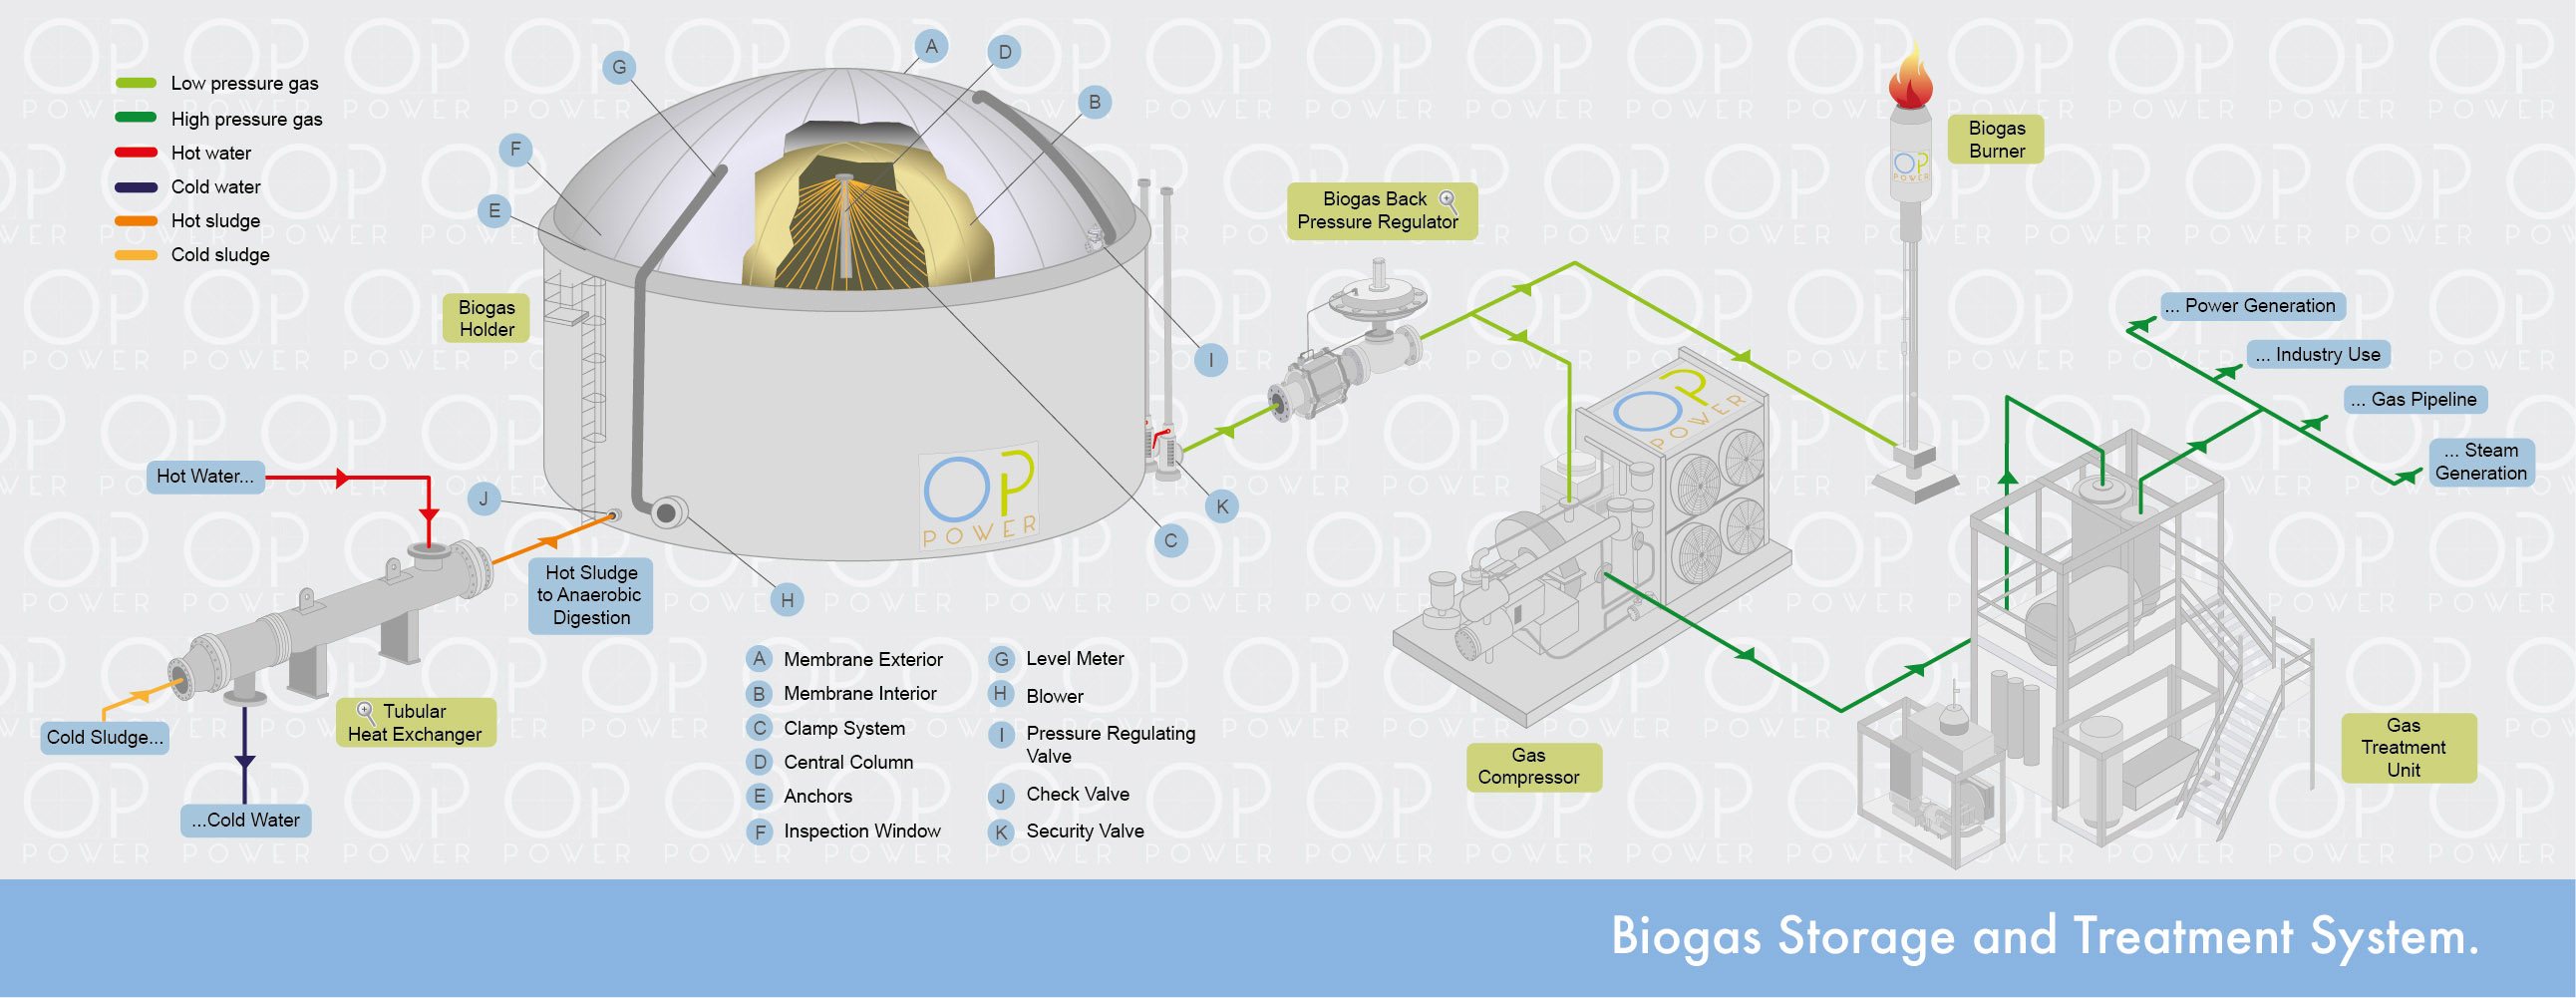 Biogas Storage and Treatment System